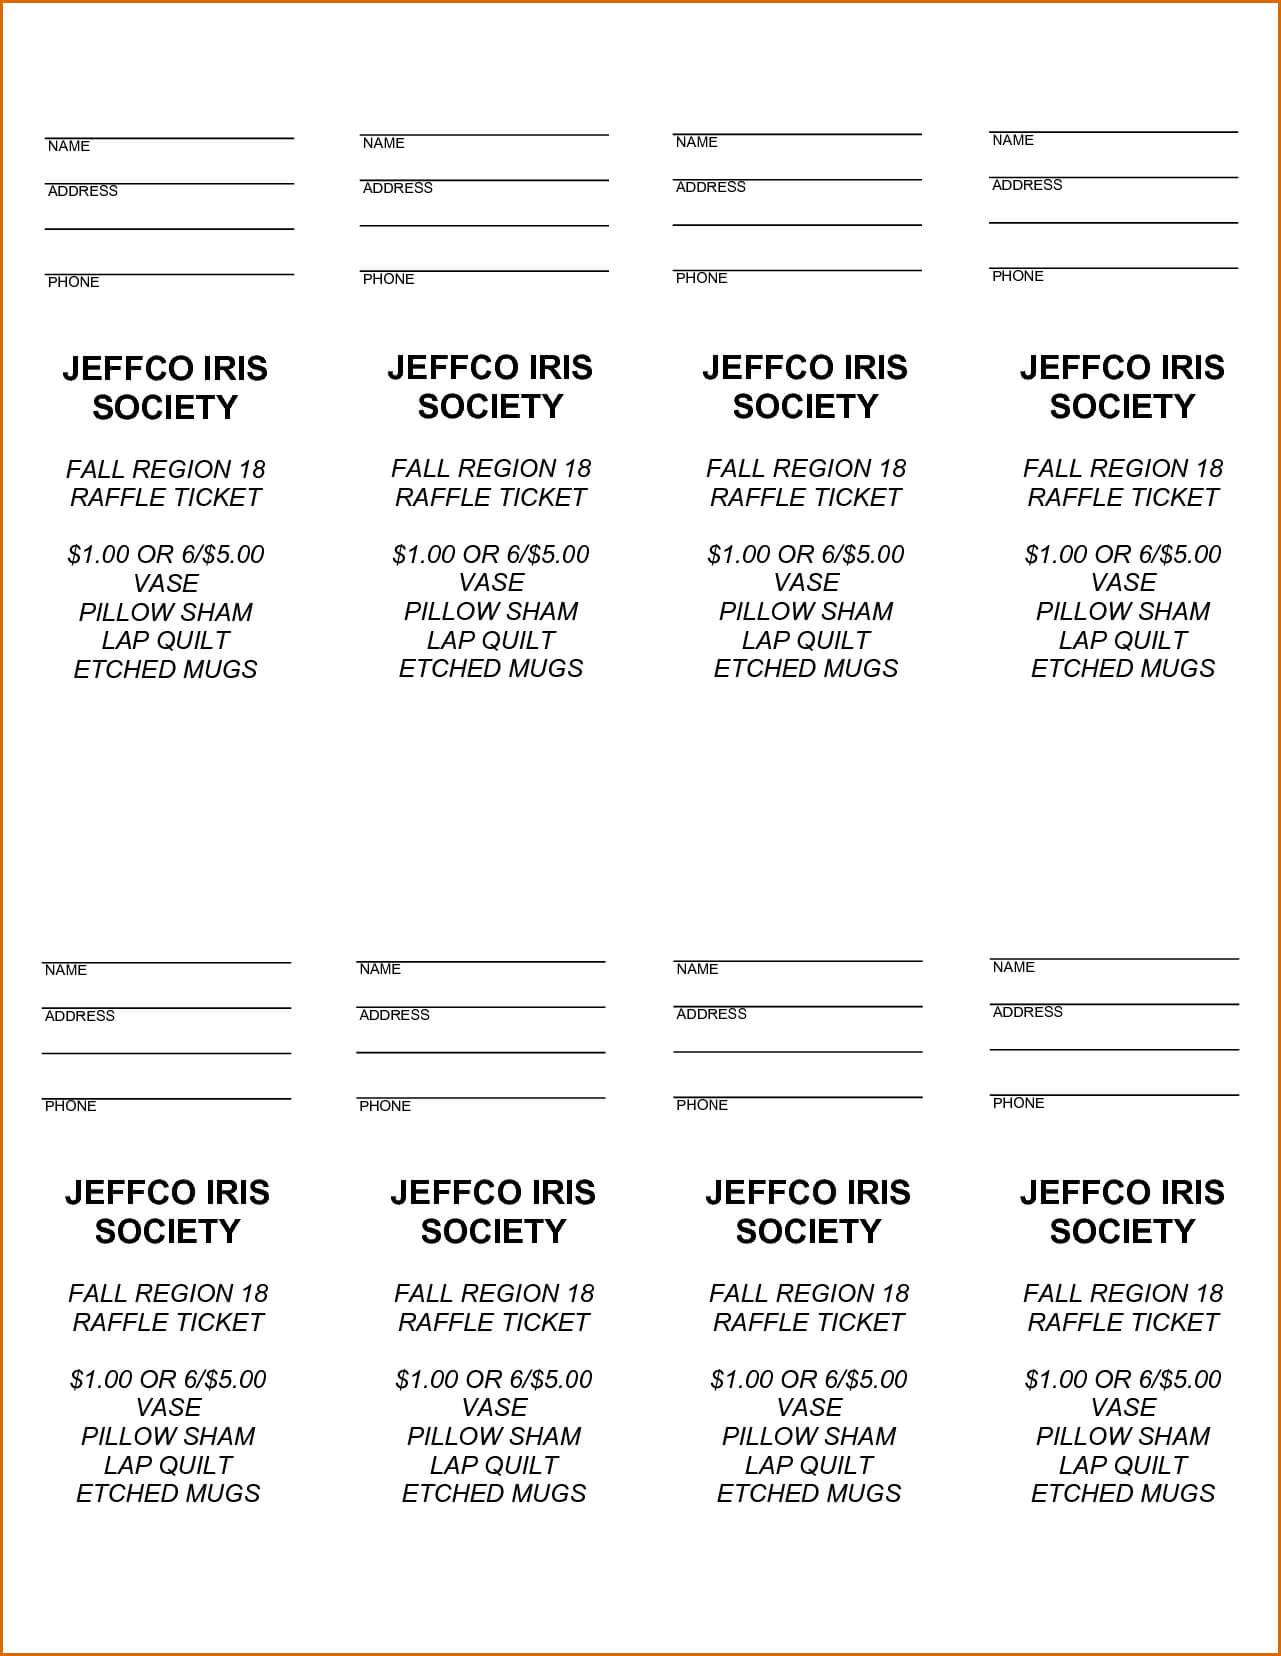 Free Printable Raffle Tickets - Free Printable Raffle Ticket Intended For Free Raffle Ticket Template For Word